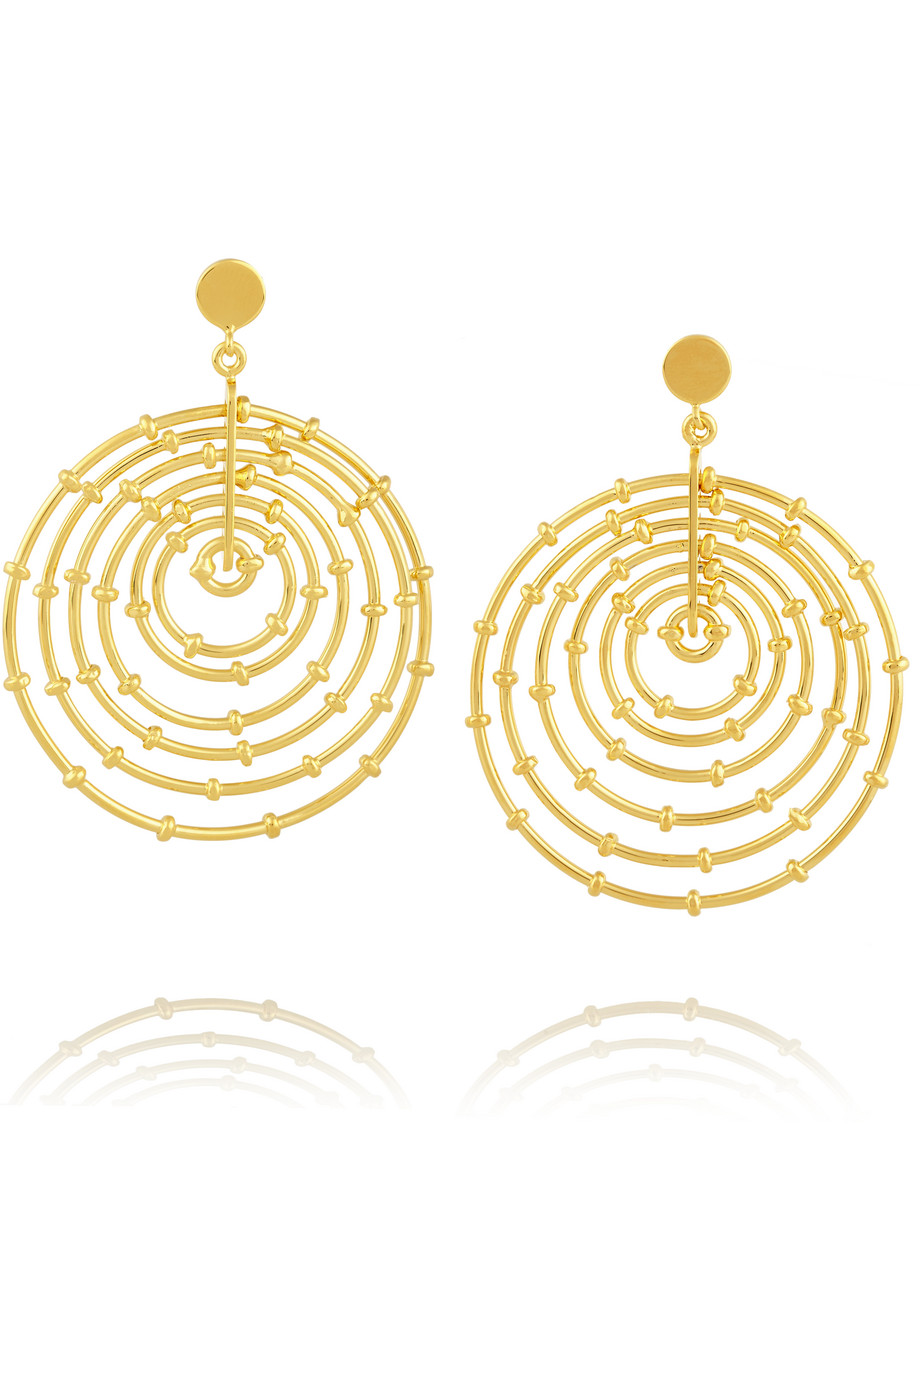 Arme De L'amour Bamboo Gold-Plated Hoop Earrings, Women's